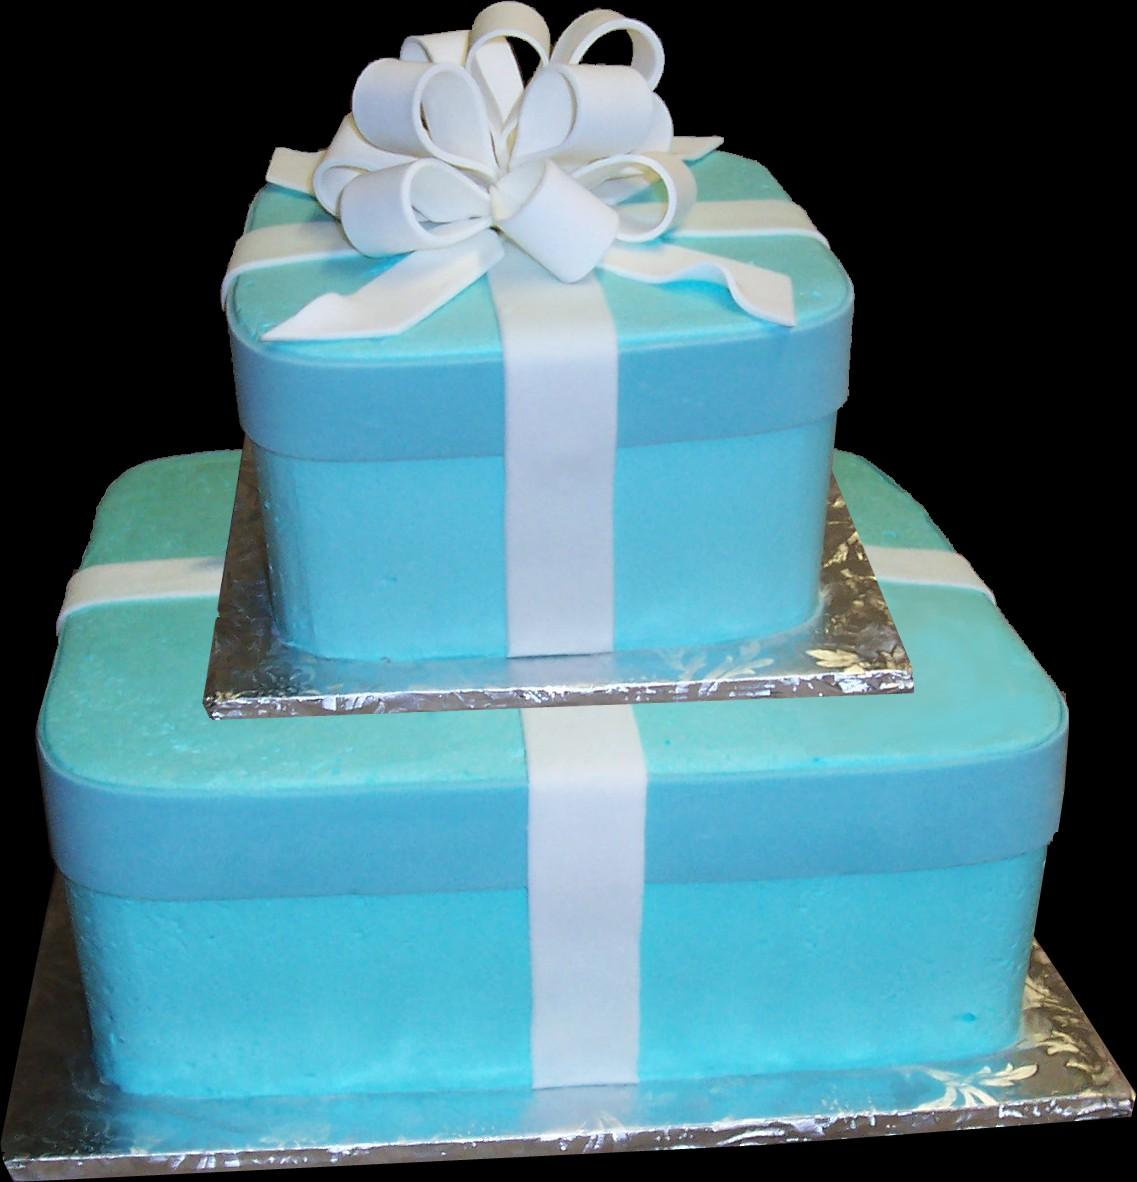 Gift Wrapped Birthday Cake Blue Buttercream Iced 2 Square Tiers Decorated With Fondant Ribbon